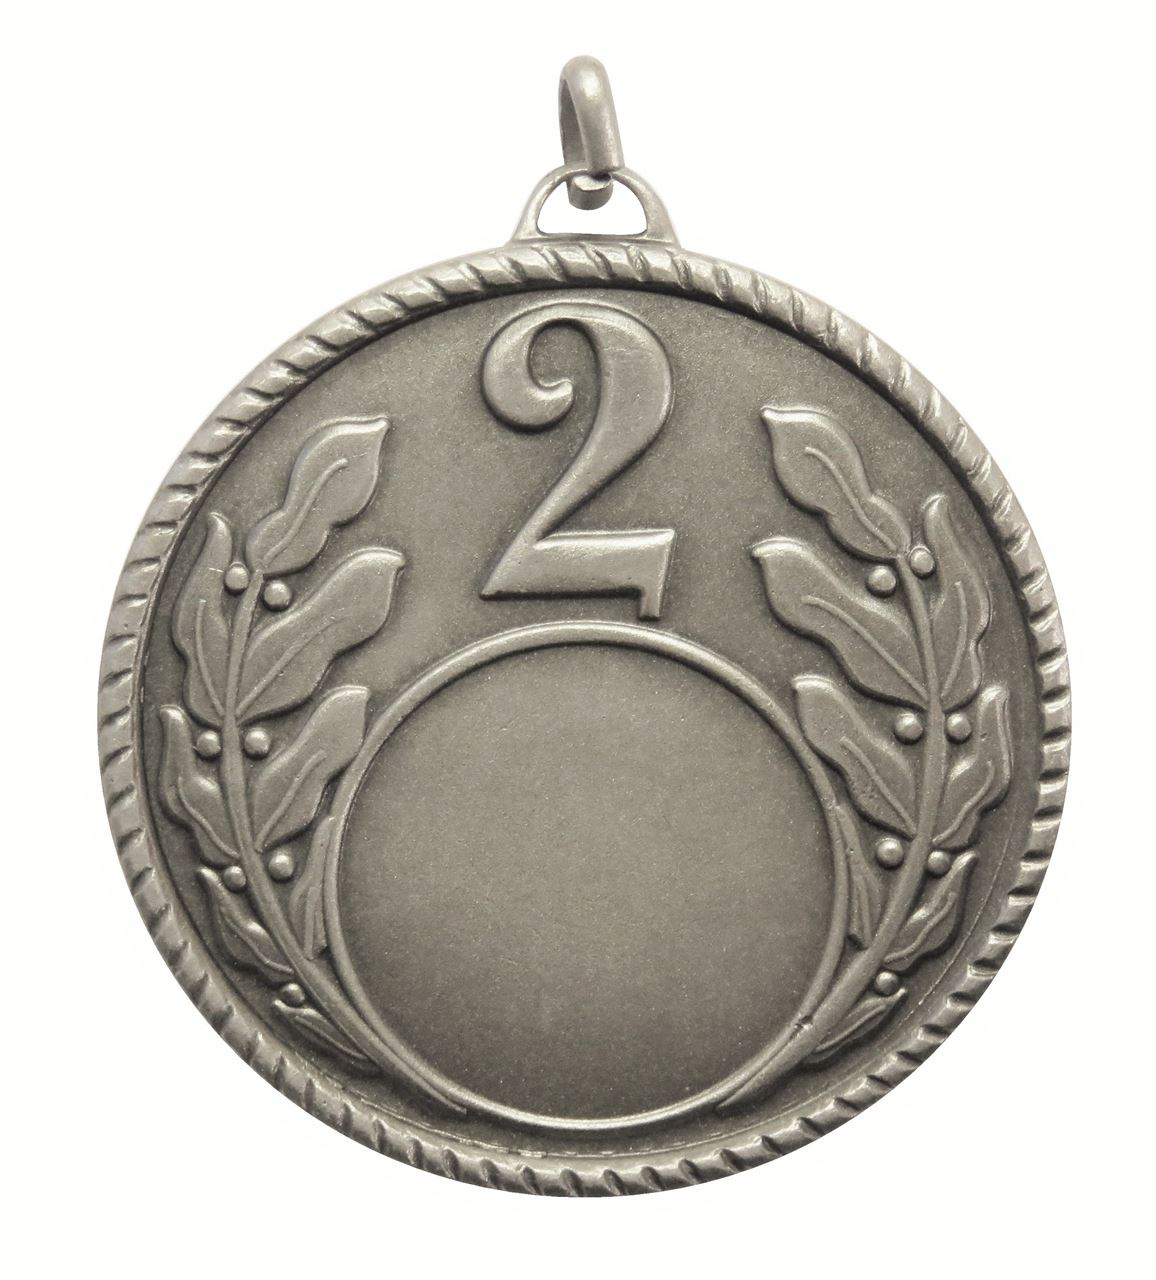 Silver Quality Royal Medal (size: 50mm) - 5802E